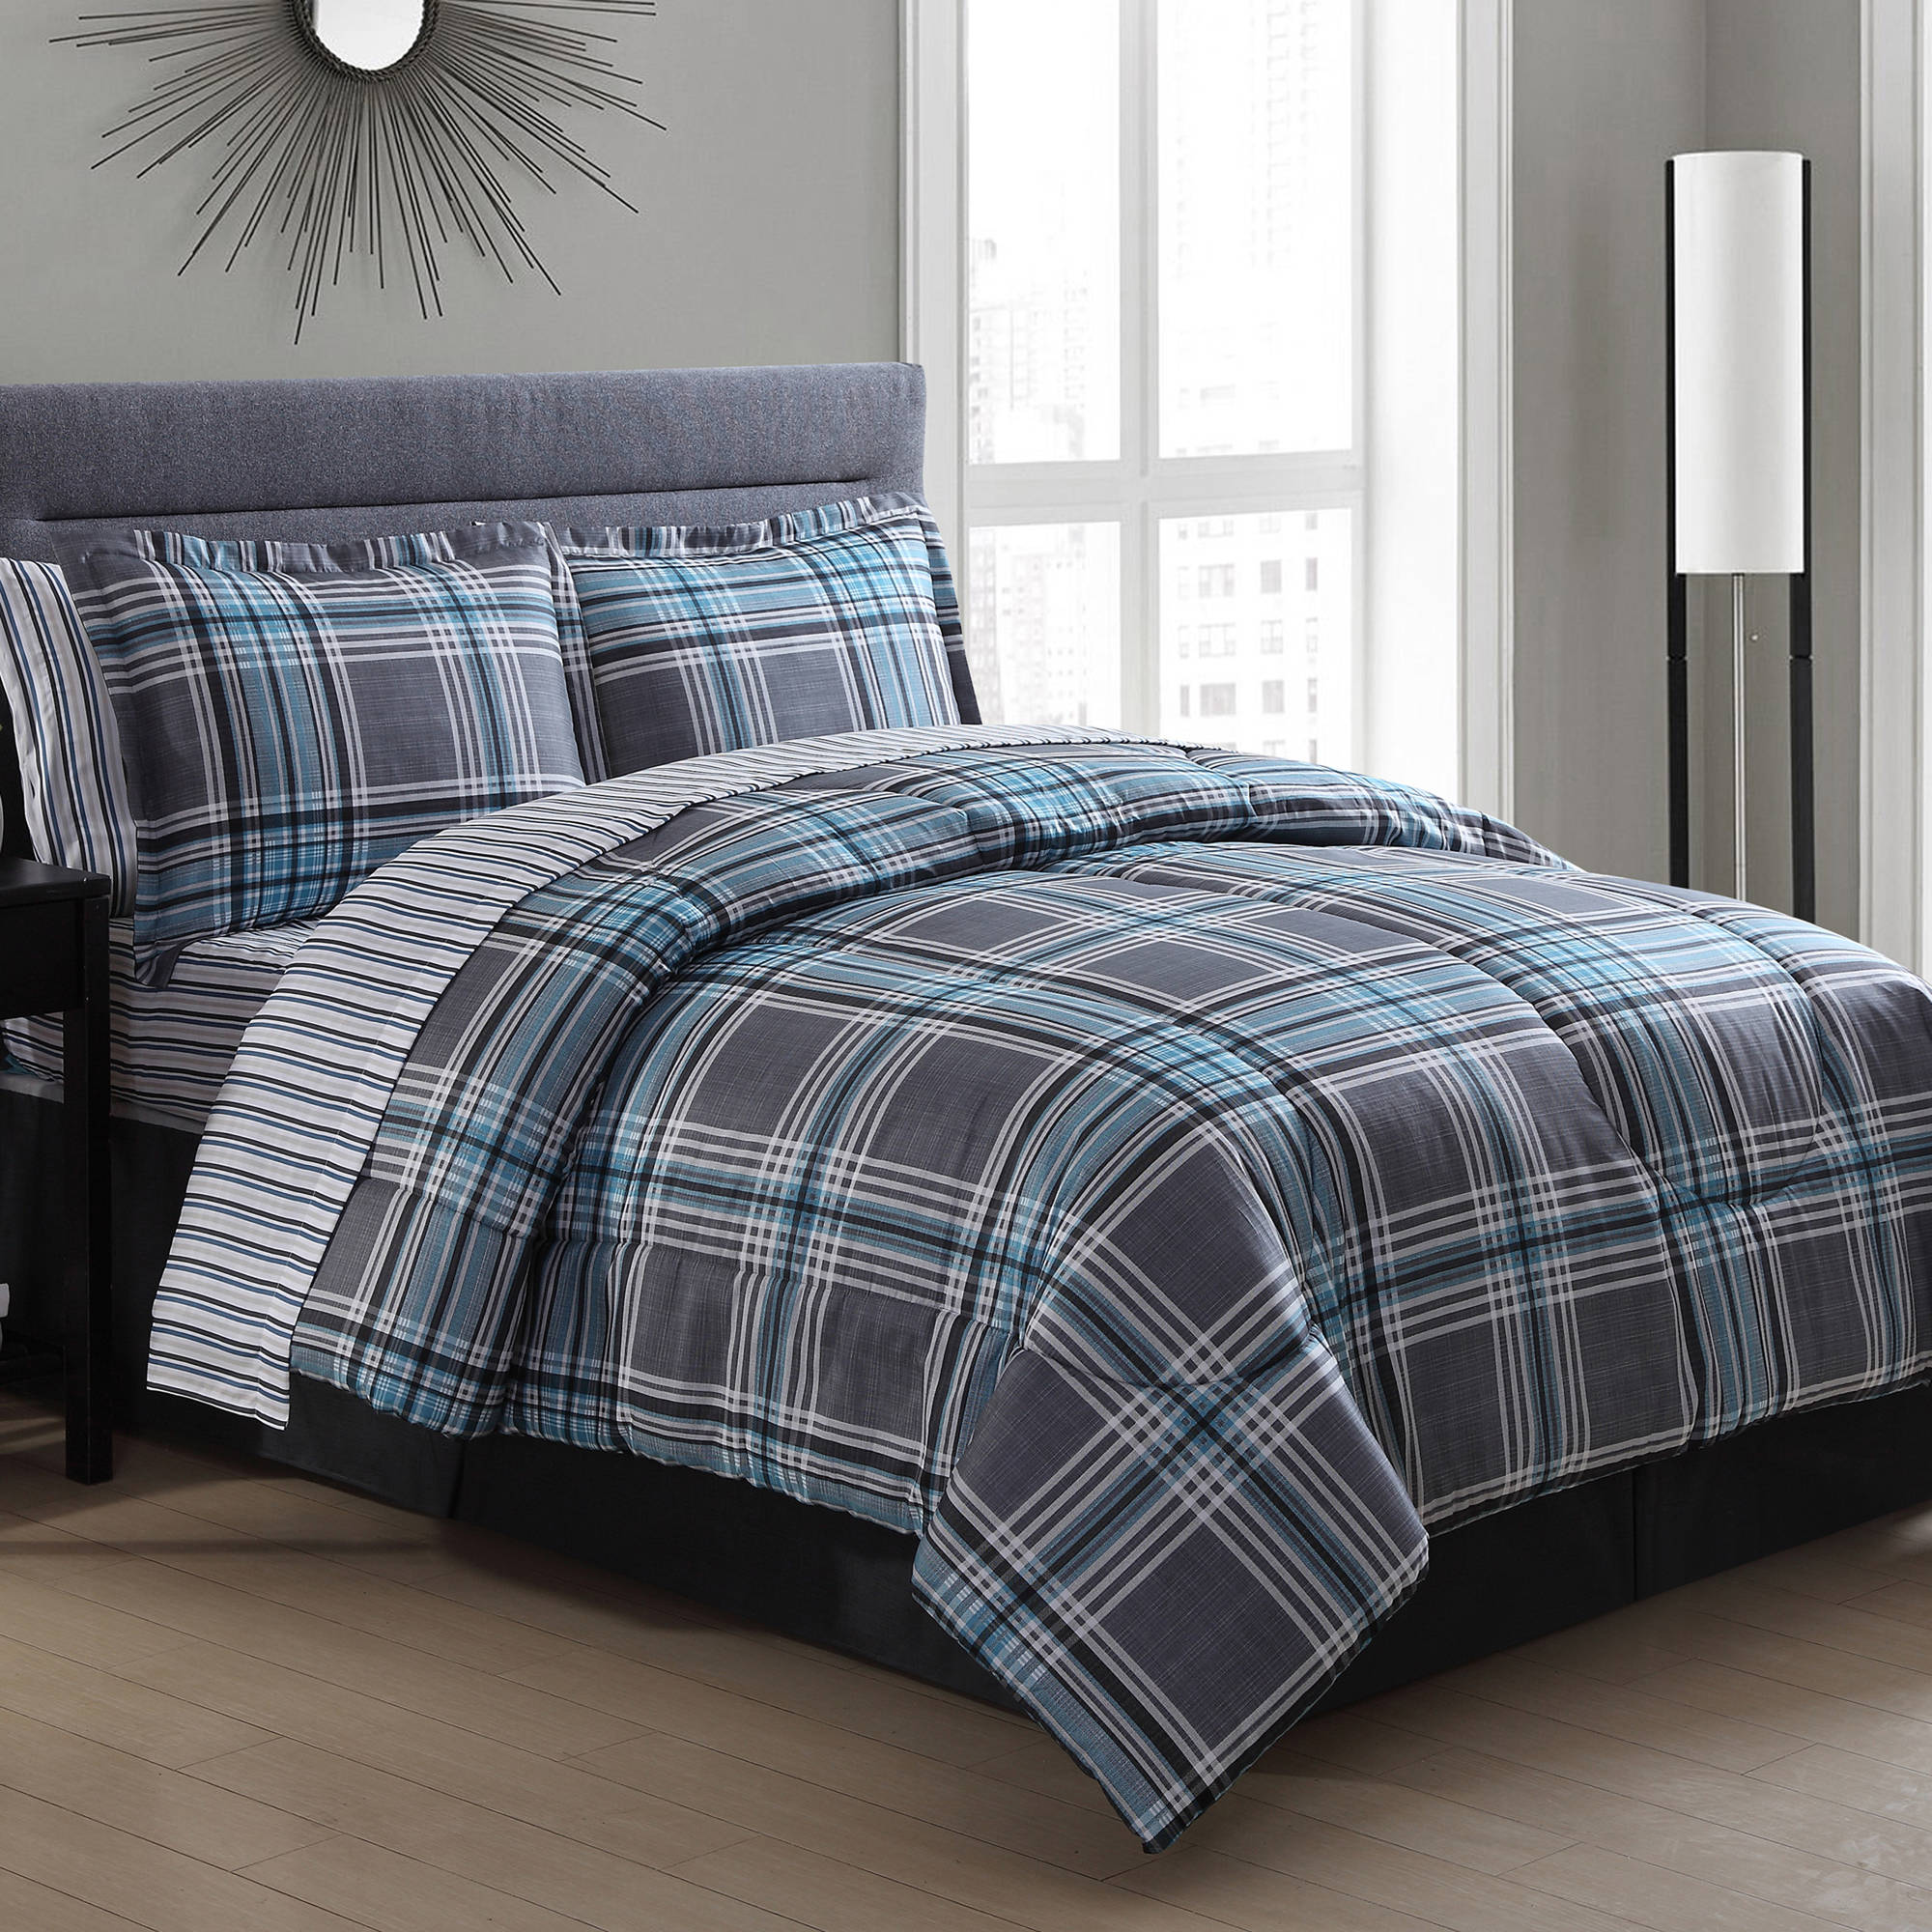 plaid cream for hillside pics covers full set tartan flannelette home supersoft apply twin rustic youramusing red bedding microfiber decor haven comforter canada to queen duvet lightweight your blue amusing quilt sets and with size of cover duvets flannel grey pink king black combine appealing white